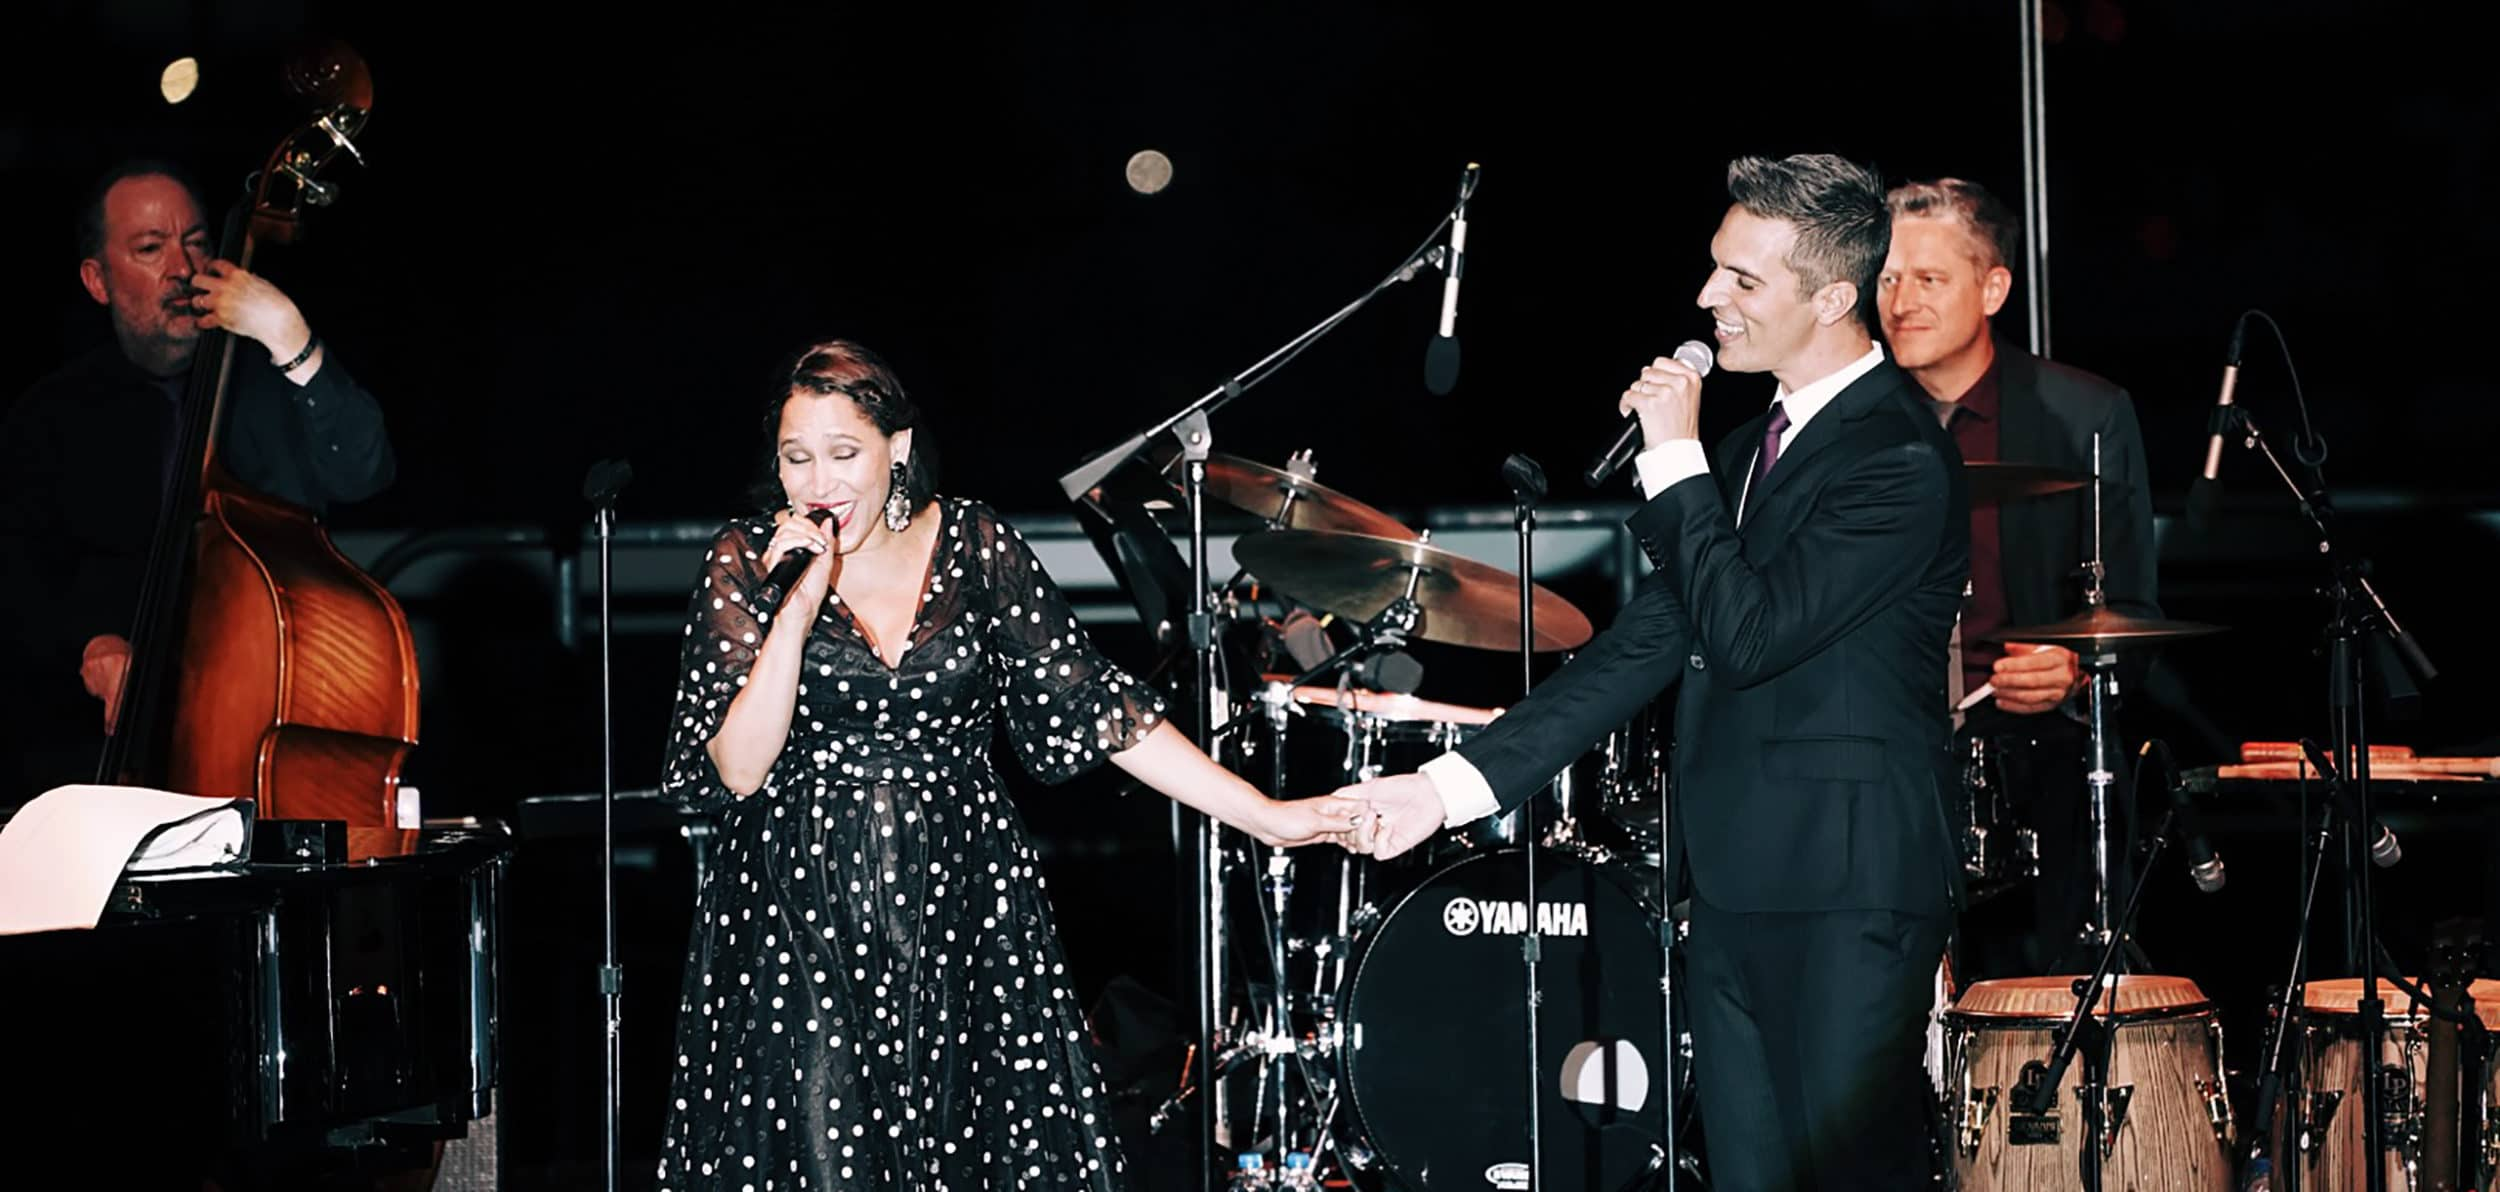 Pink Martini performing at the Rooftop at Pier 17